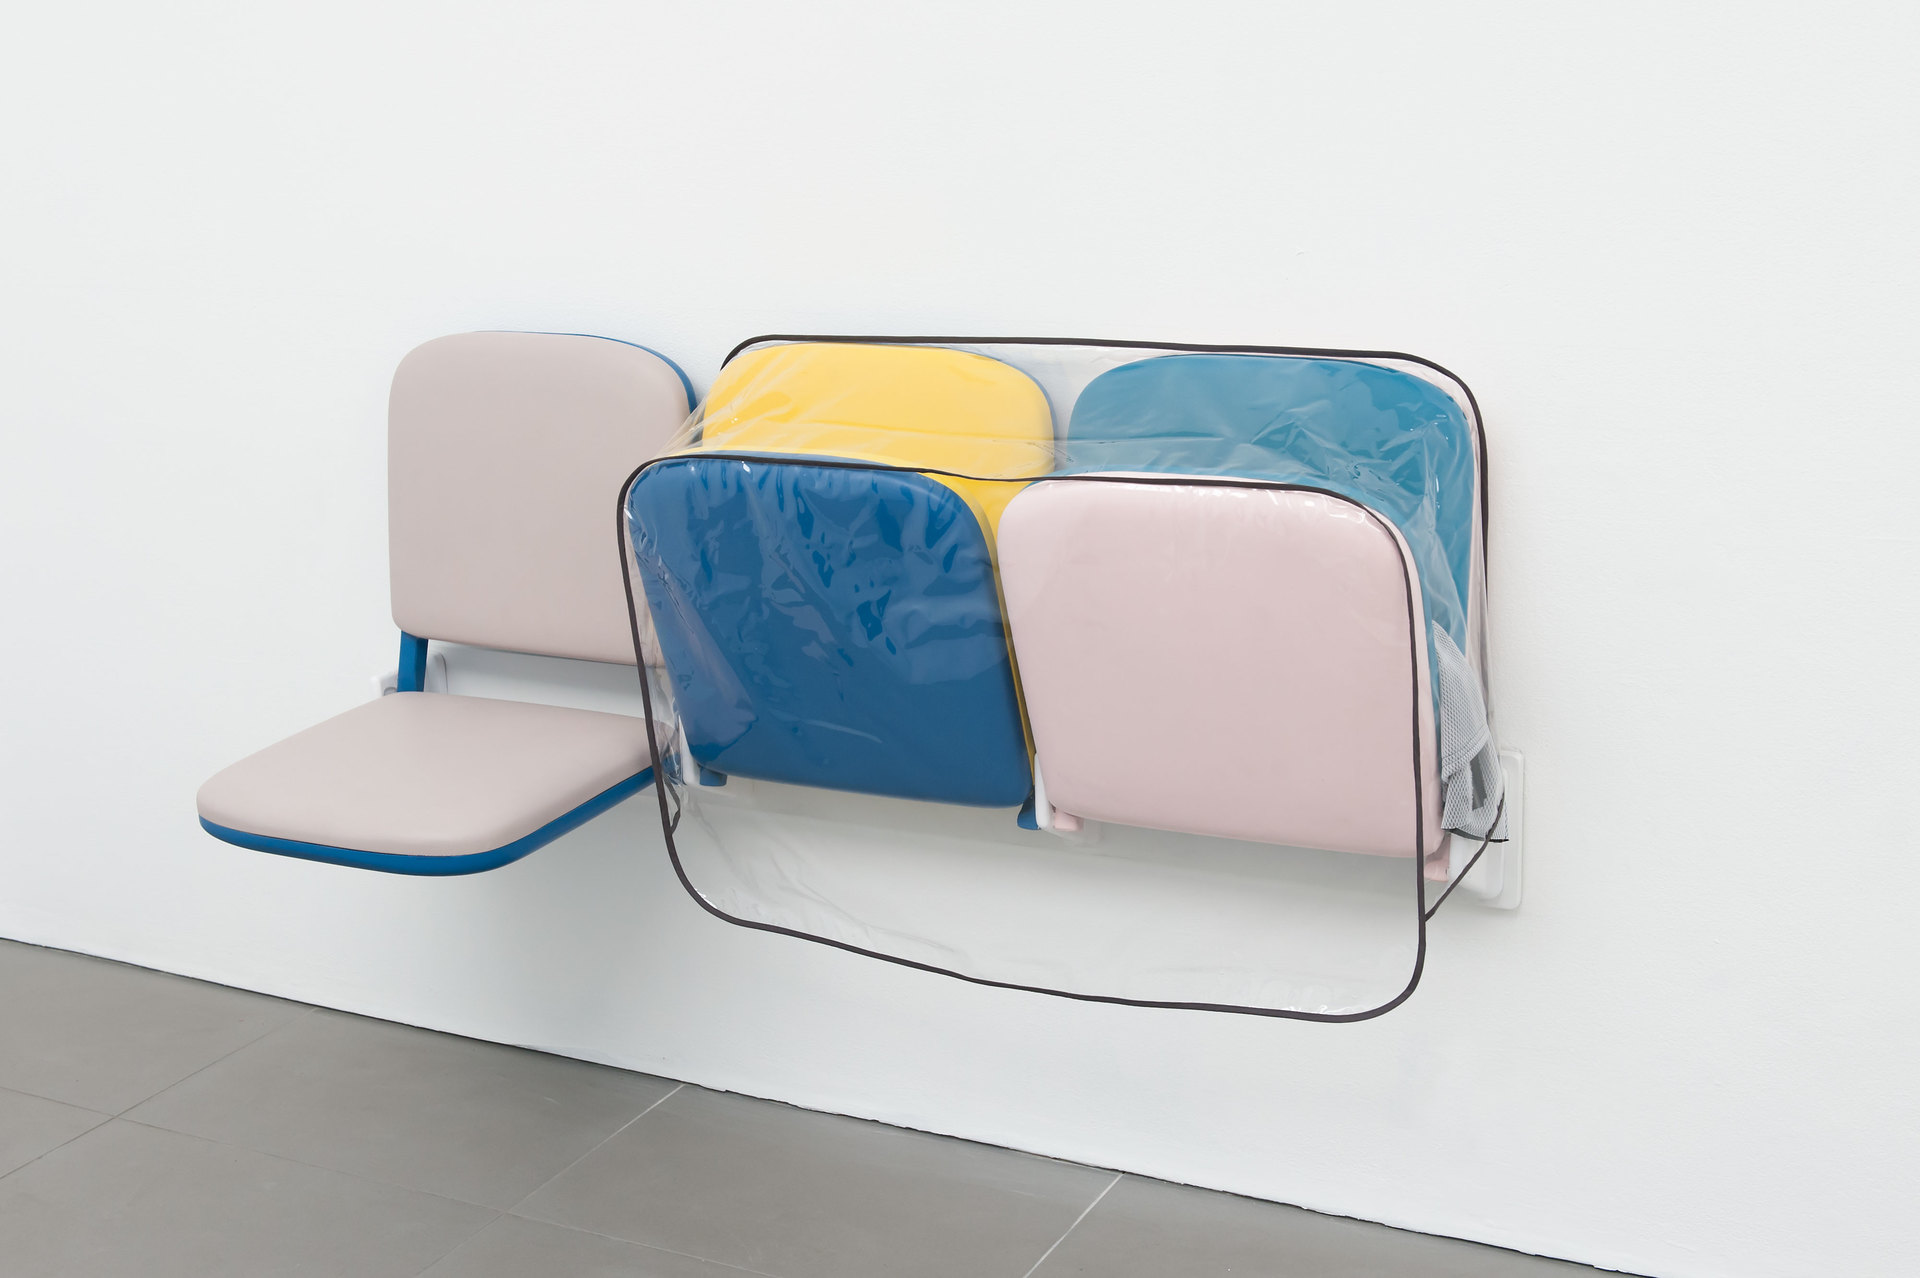 Magali Reus, Parking (Jogs), 2013, polyester resin, pigments, clear PVC, cotton, Airtex, 57 cm x 140 cm x 48 cm, Cell Project Space